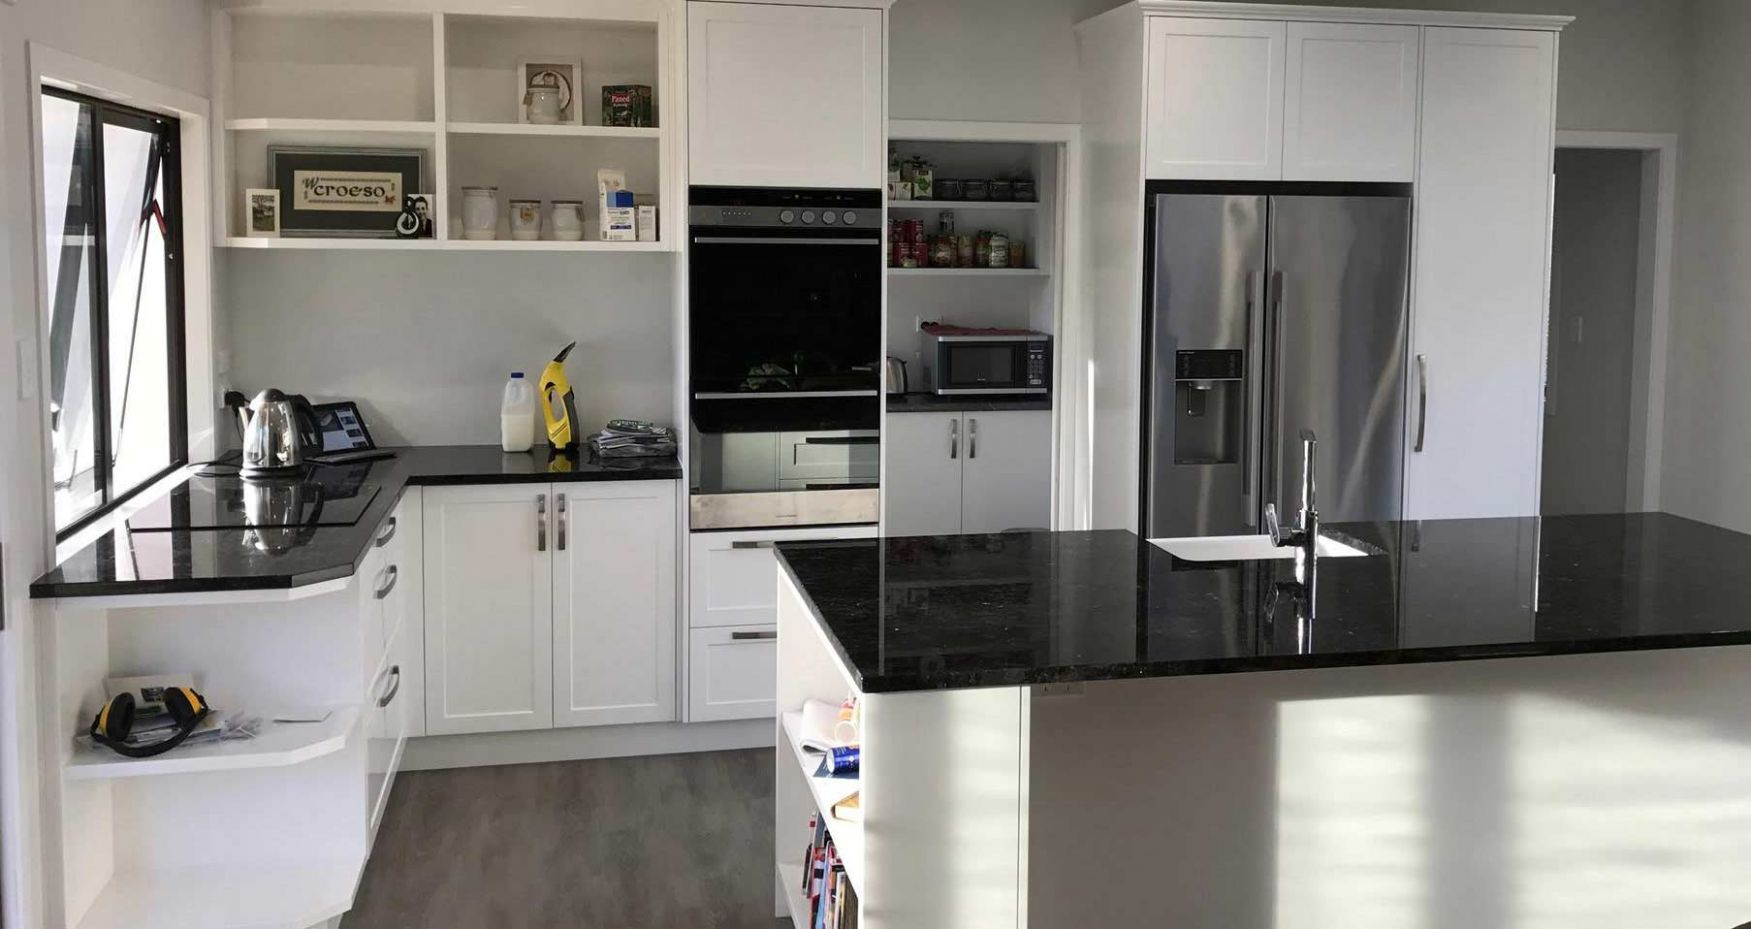 kitchen design nz - Tutalo.parkersydnorhistoric